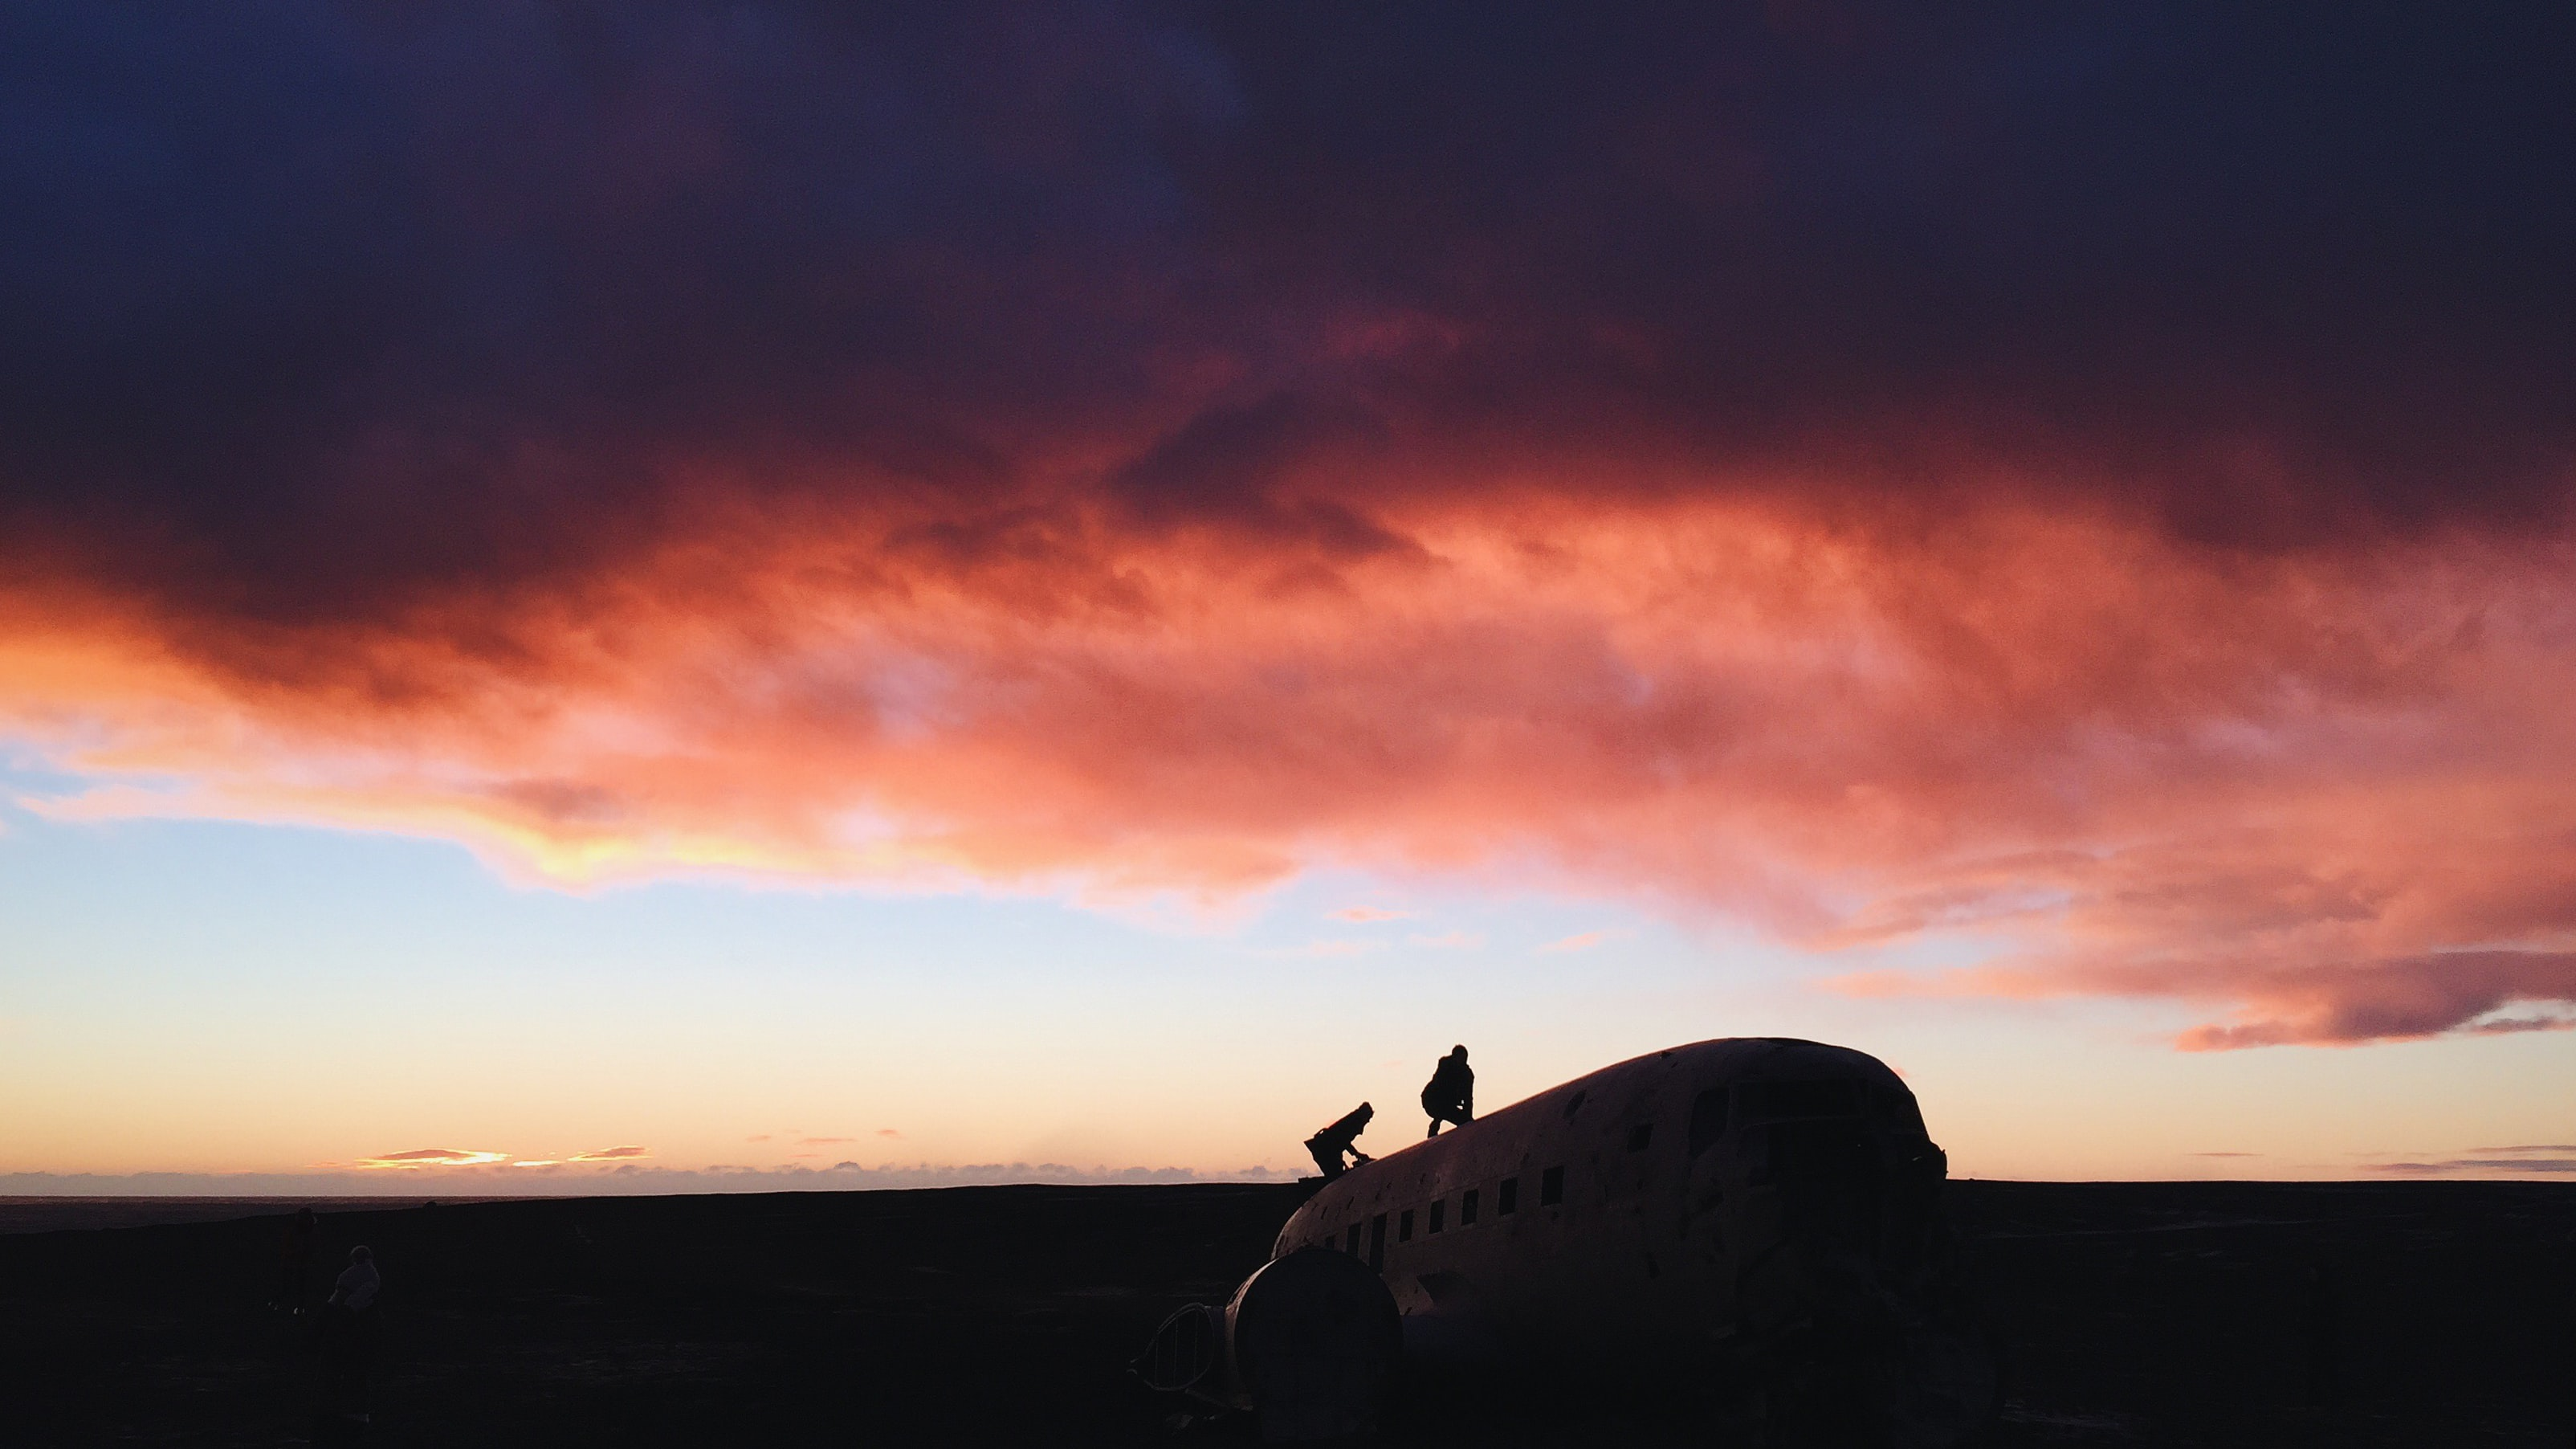 Two people climbing on an abandoned airplane under a sunset sky with pink clouds in Solheimasandur